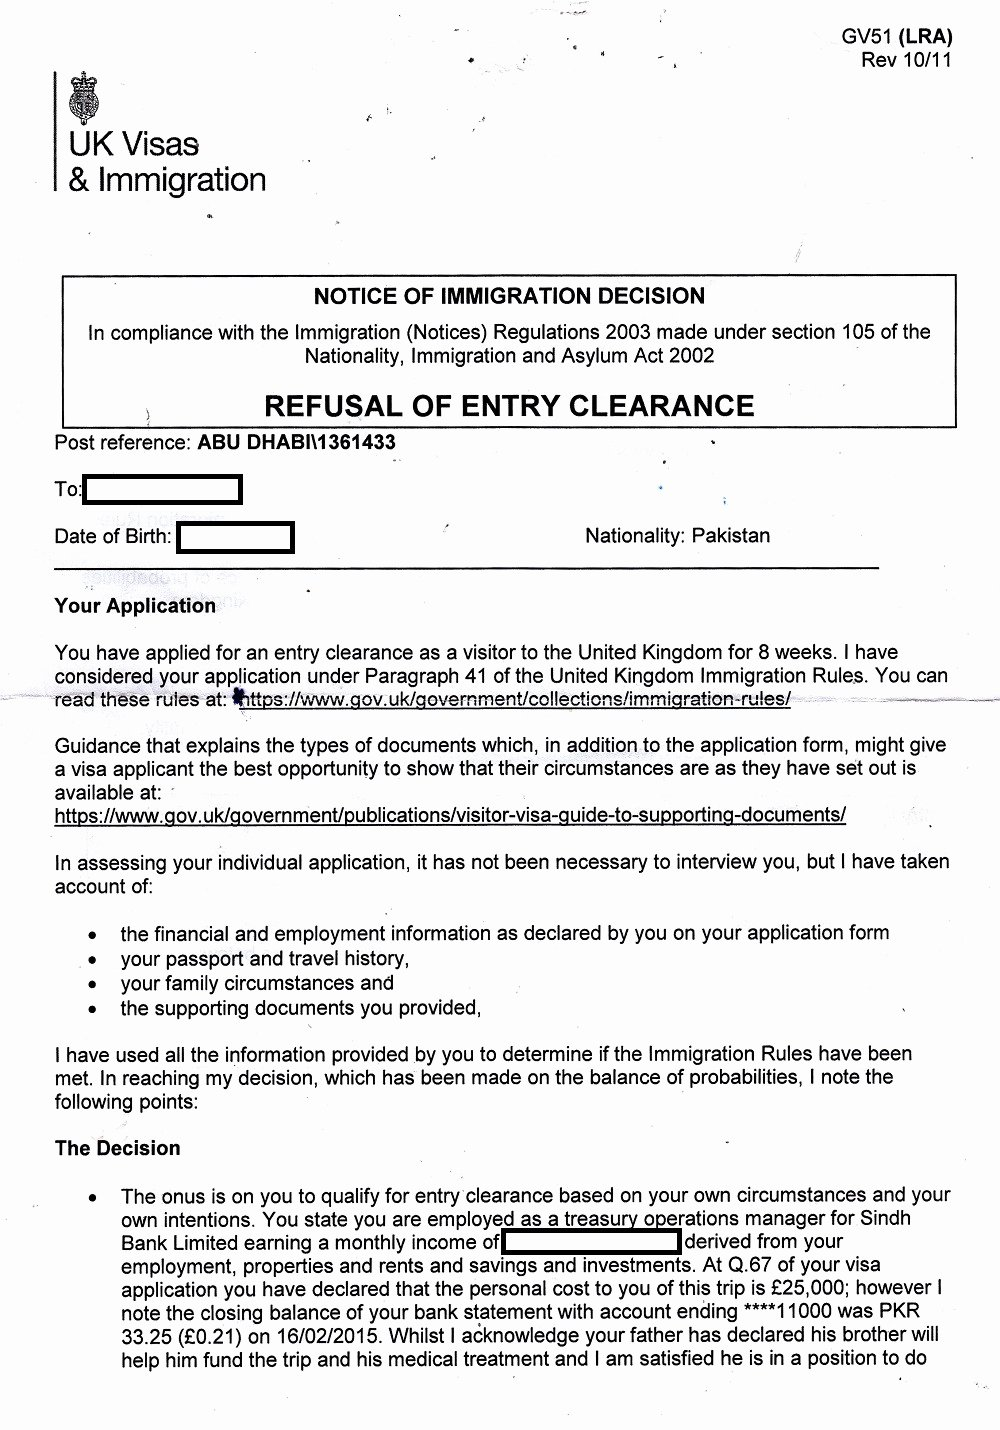 Medical Treatment Refusal form Template Fresh Application for Uk Special Visa attendant for Medical